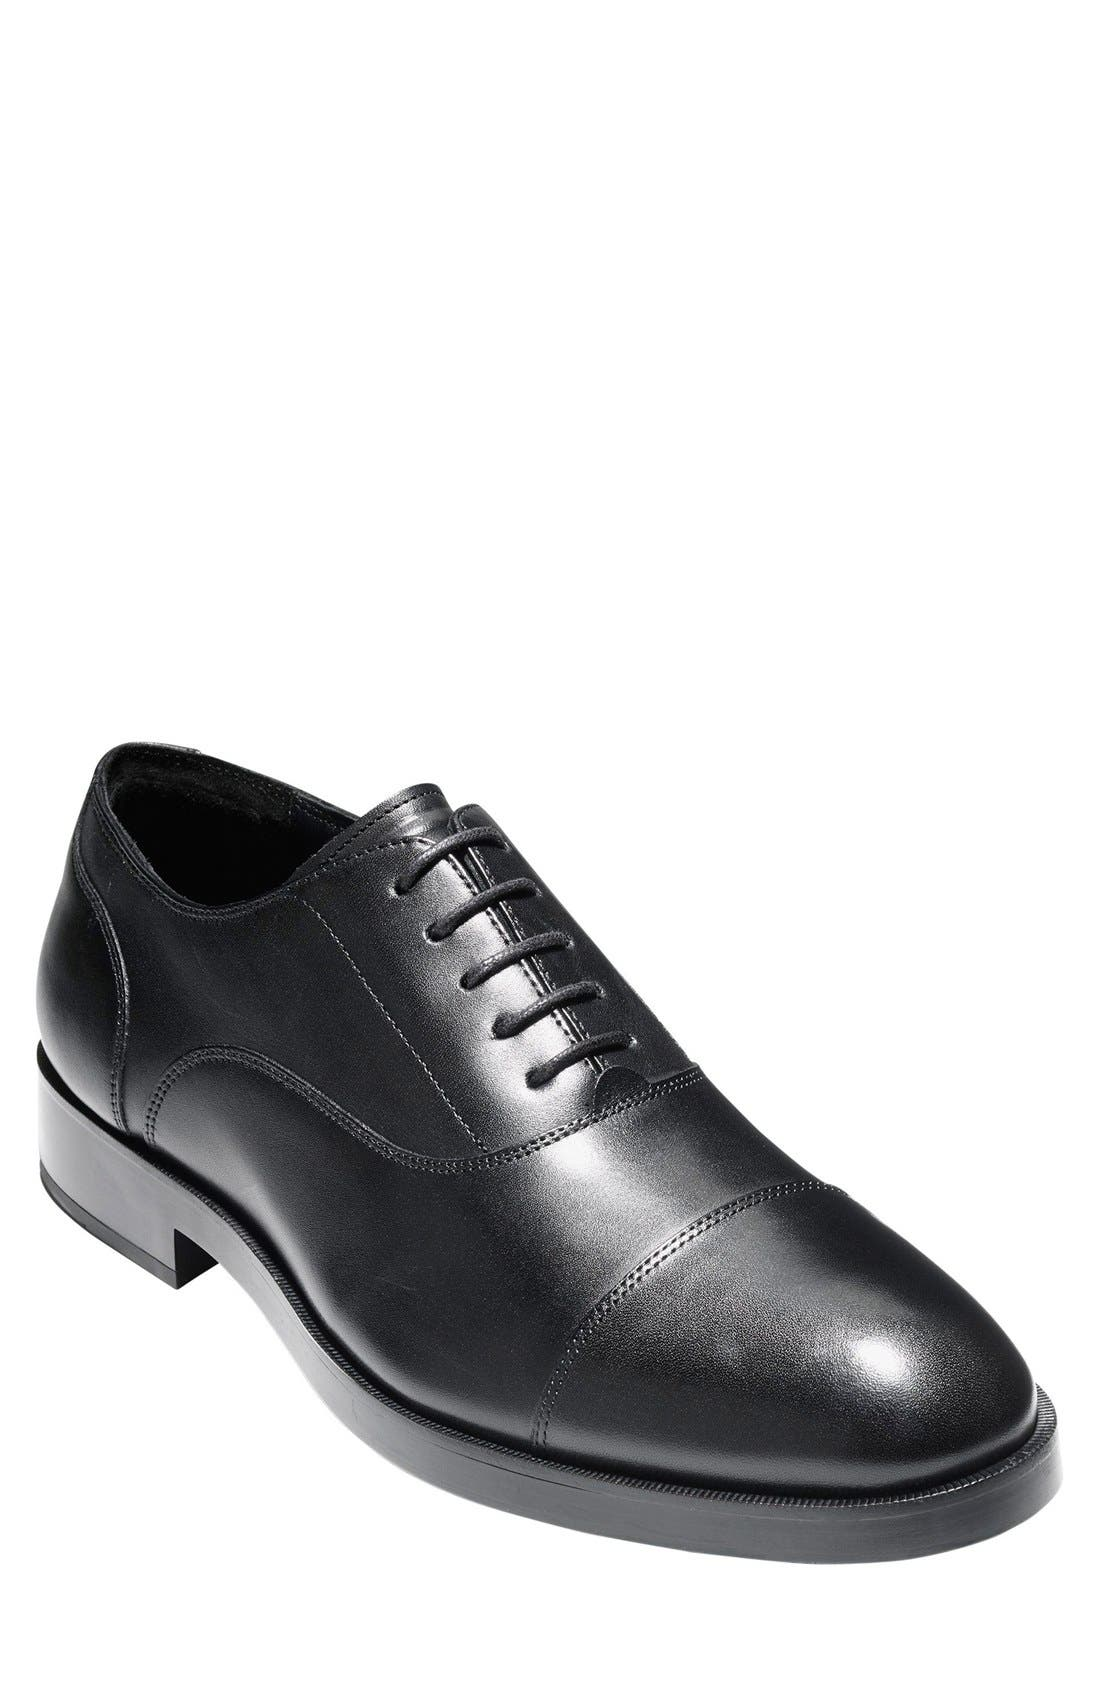 COLE HAAN, Harrison Grand Cap Toe Oxford, Alternate thumbnail 10, color, BLACK/ BLACK LEATHER